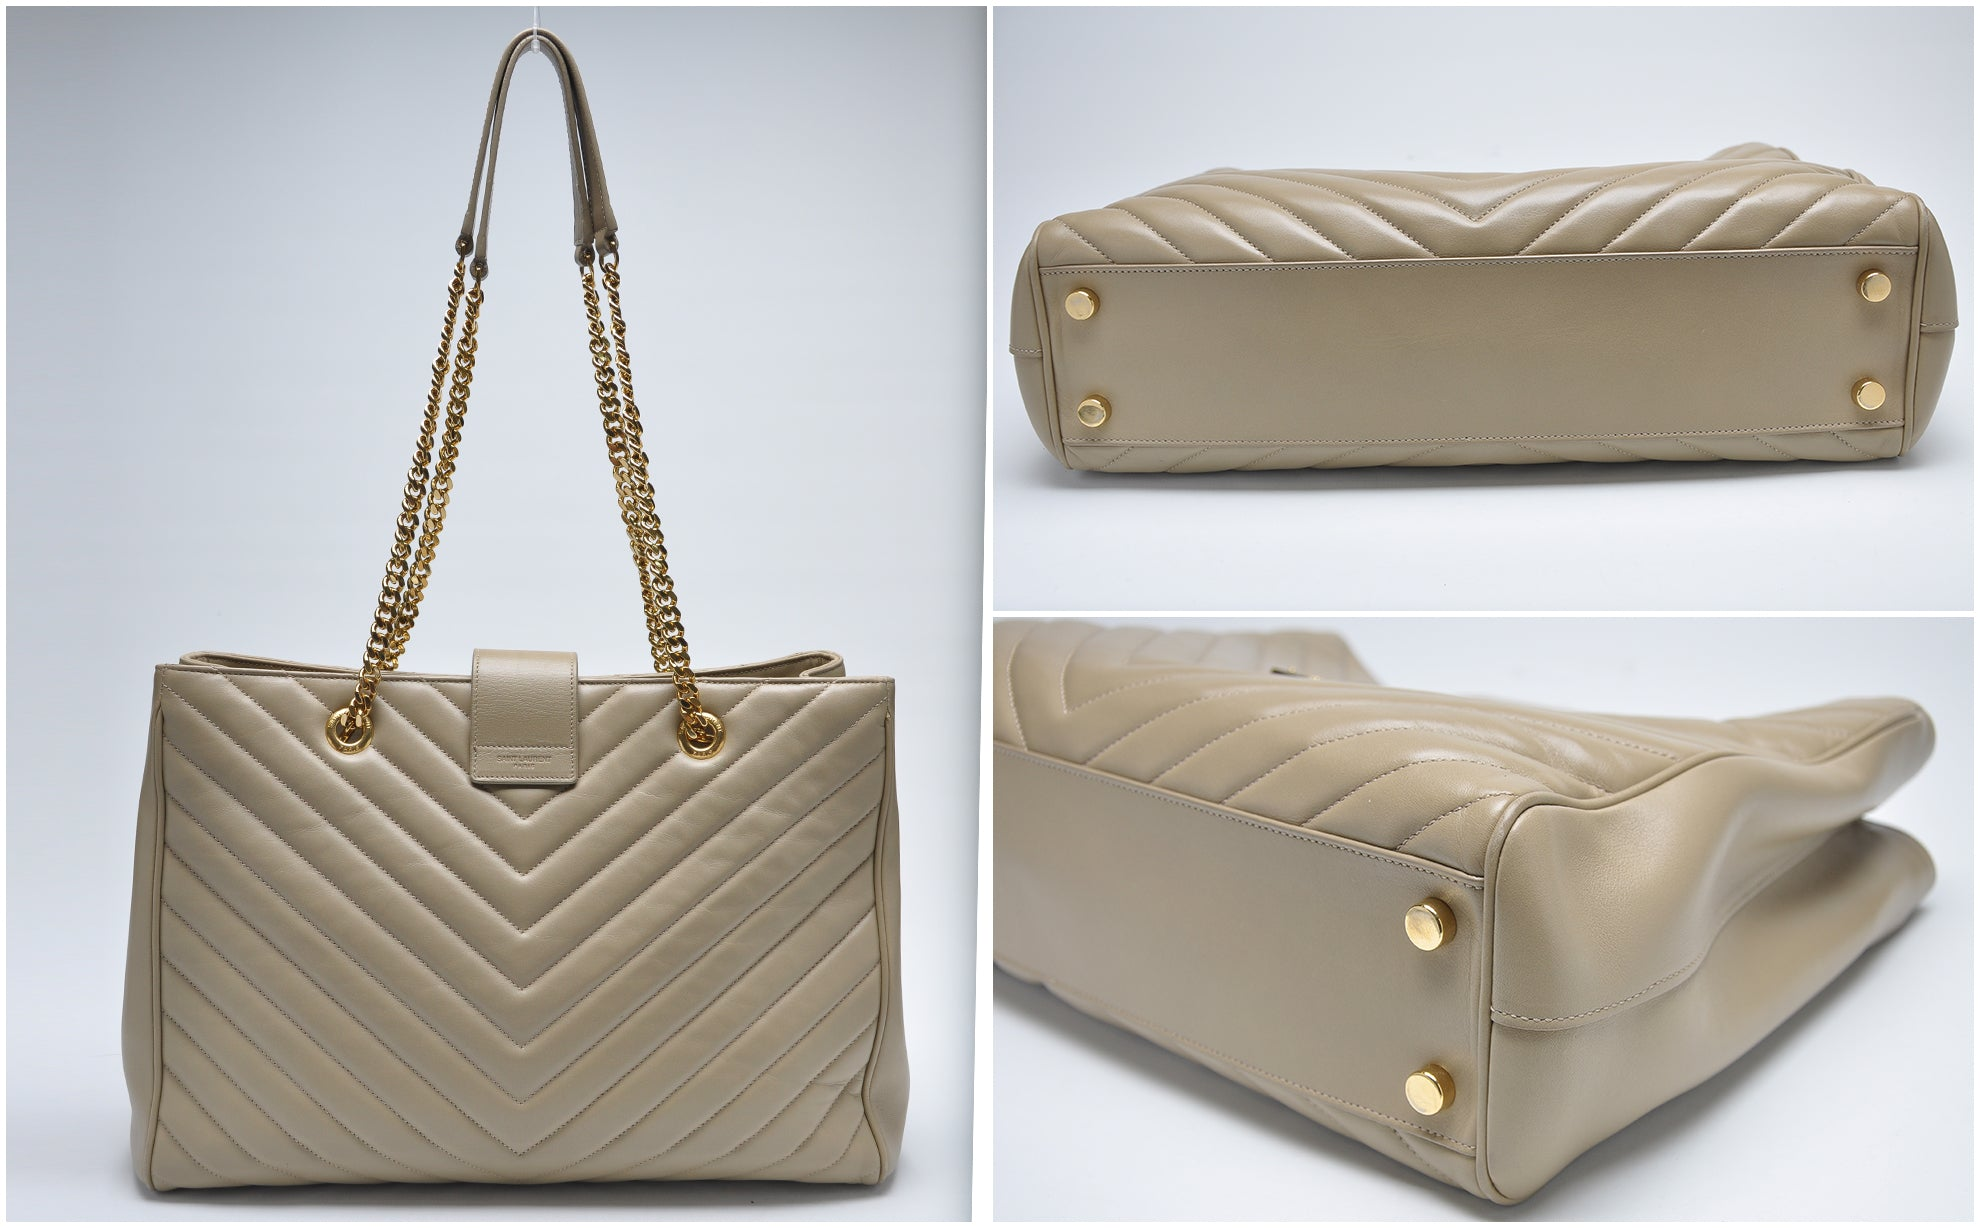 Chevron Tote Bag in Beige / Gold Hardware - Glampot